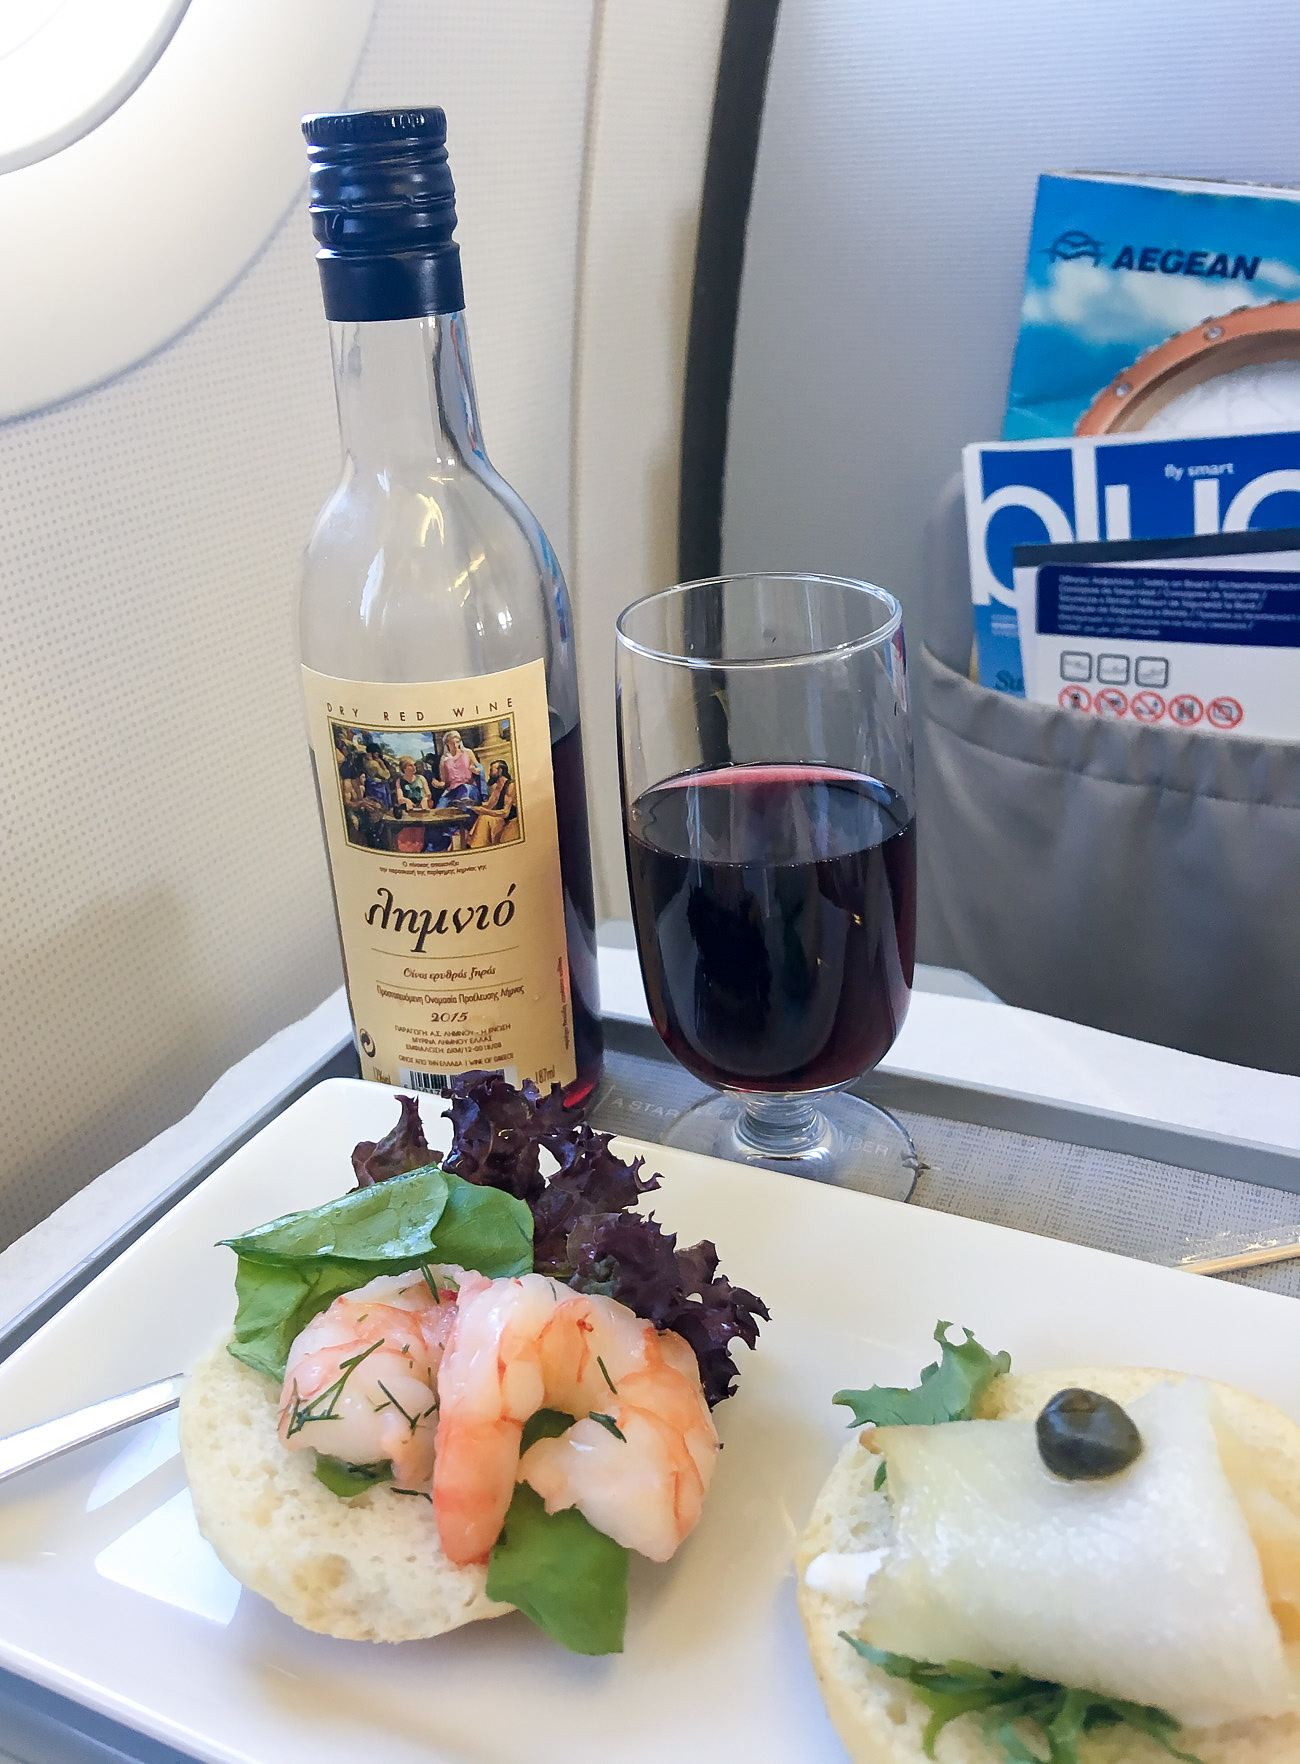 Snack meal served between Athens and Heraklion on Aegean Airlines in business class.